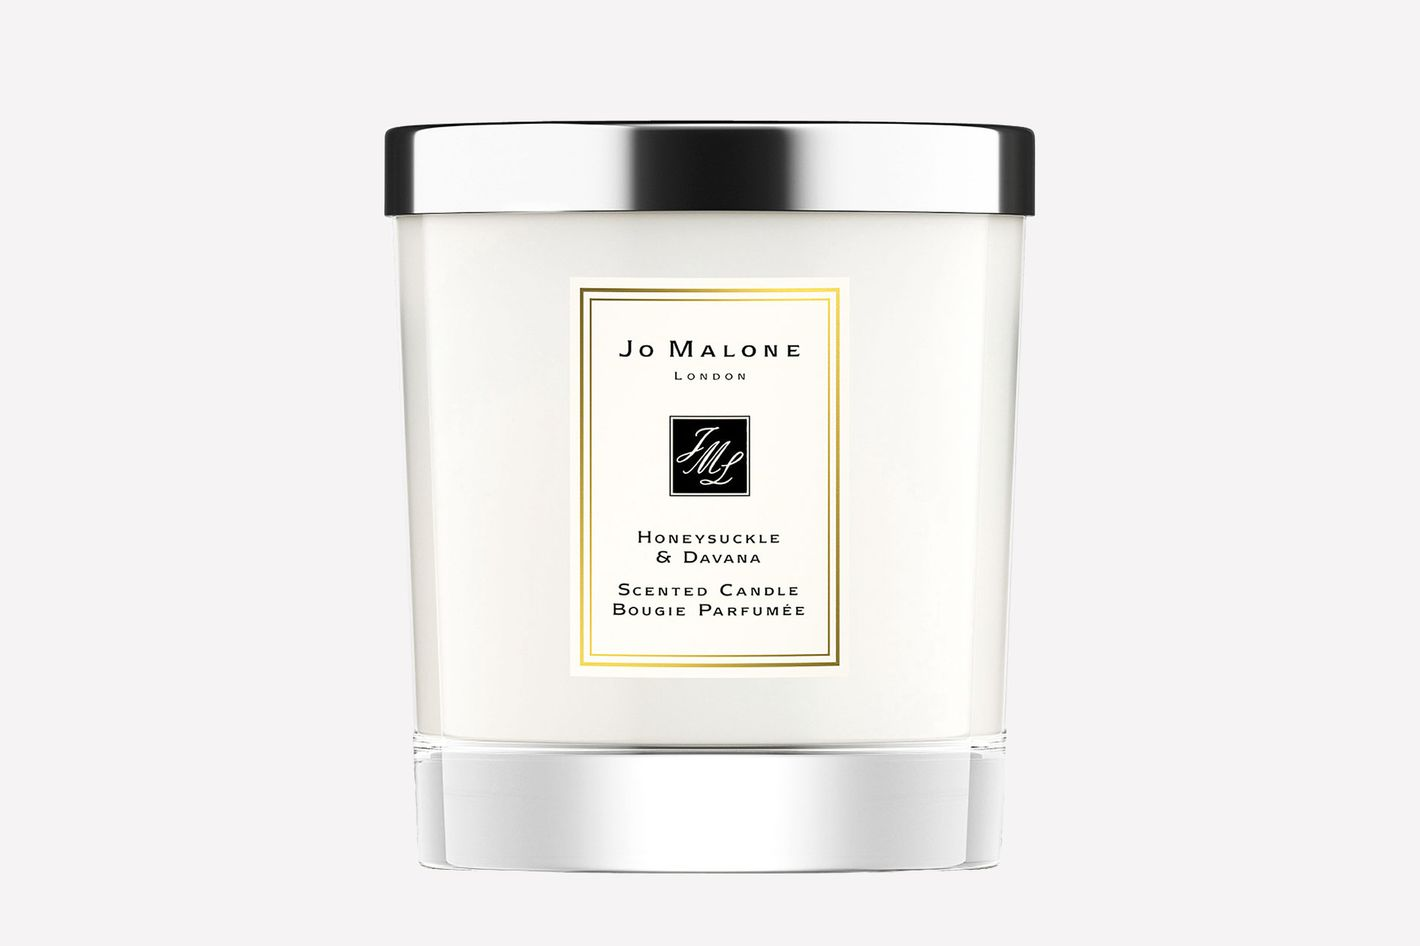 Honeysuckle and Davana Scented Home Candle